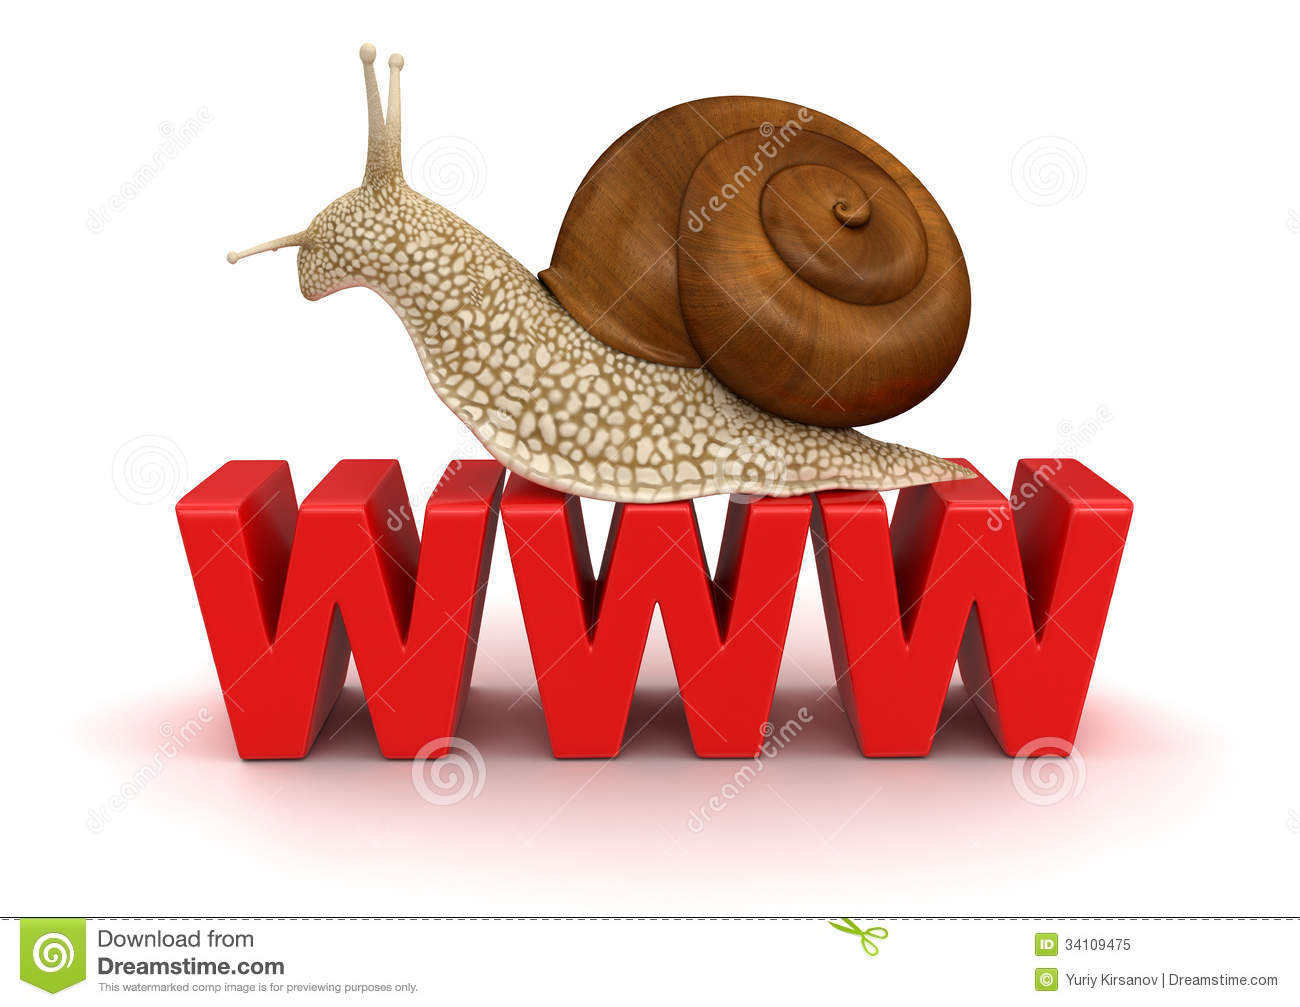 snail and www clipping path included royalty free stock